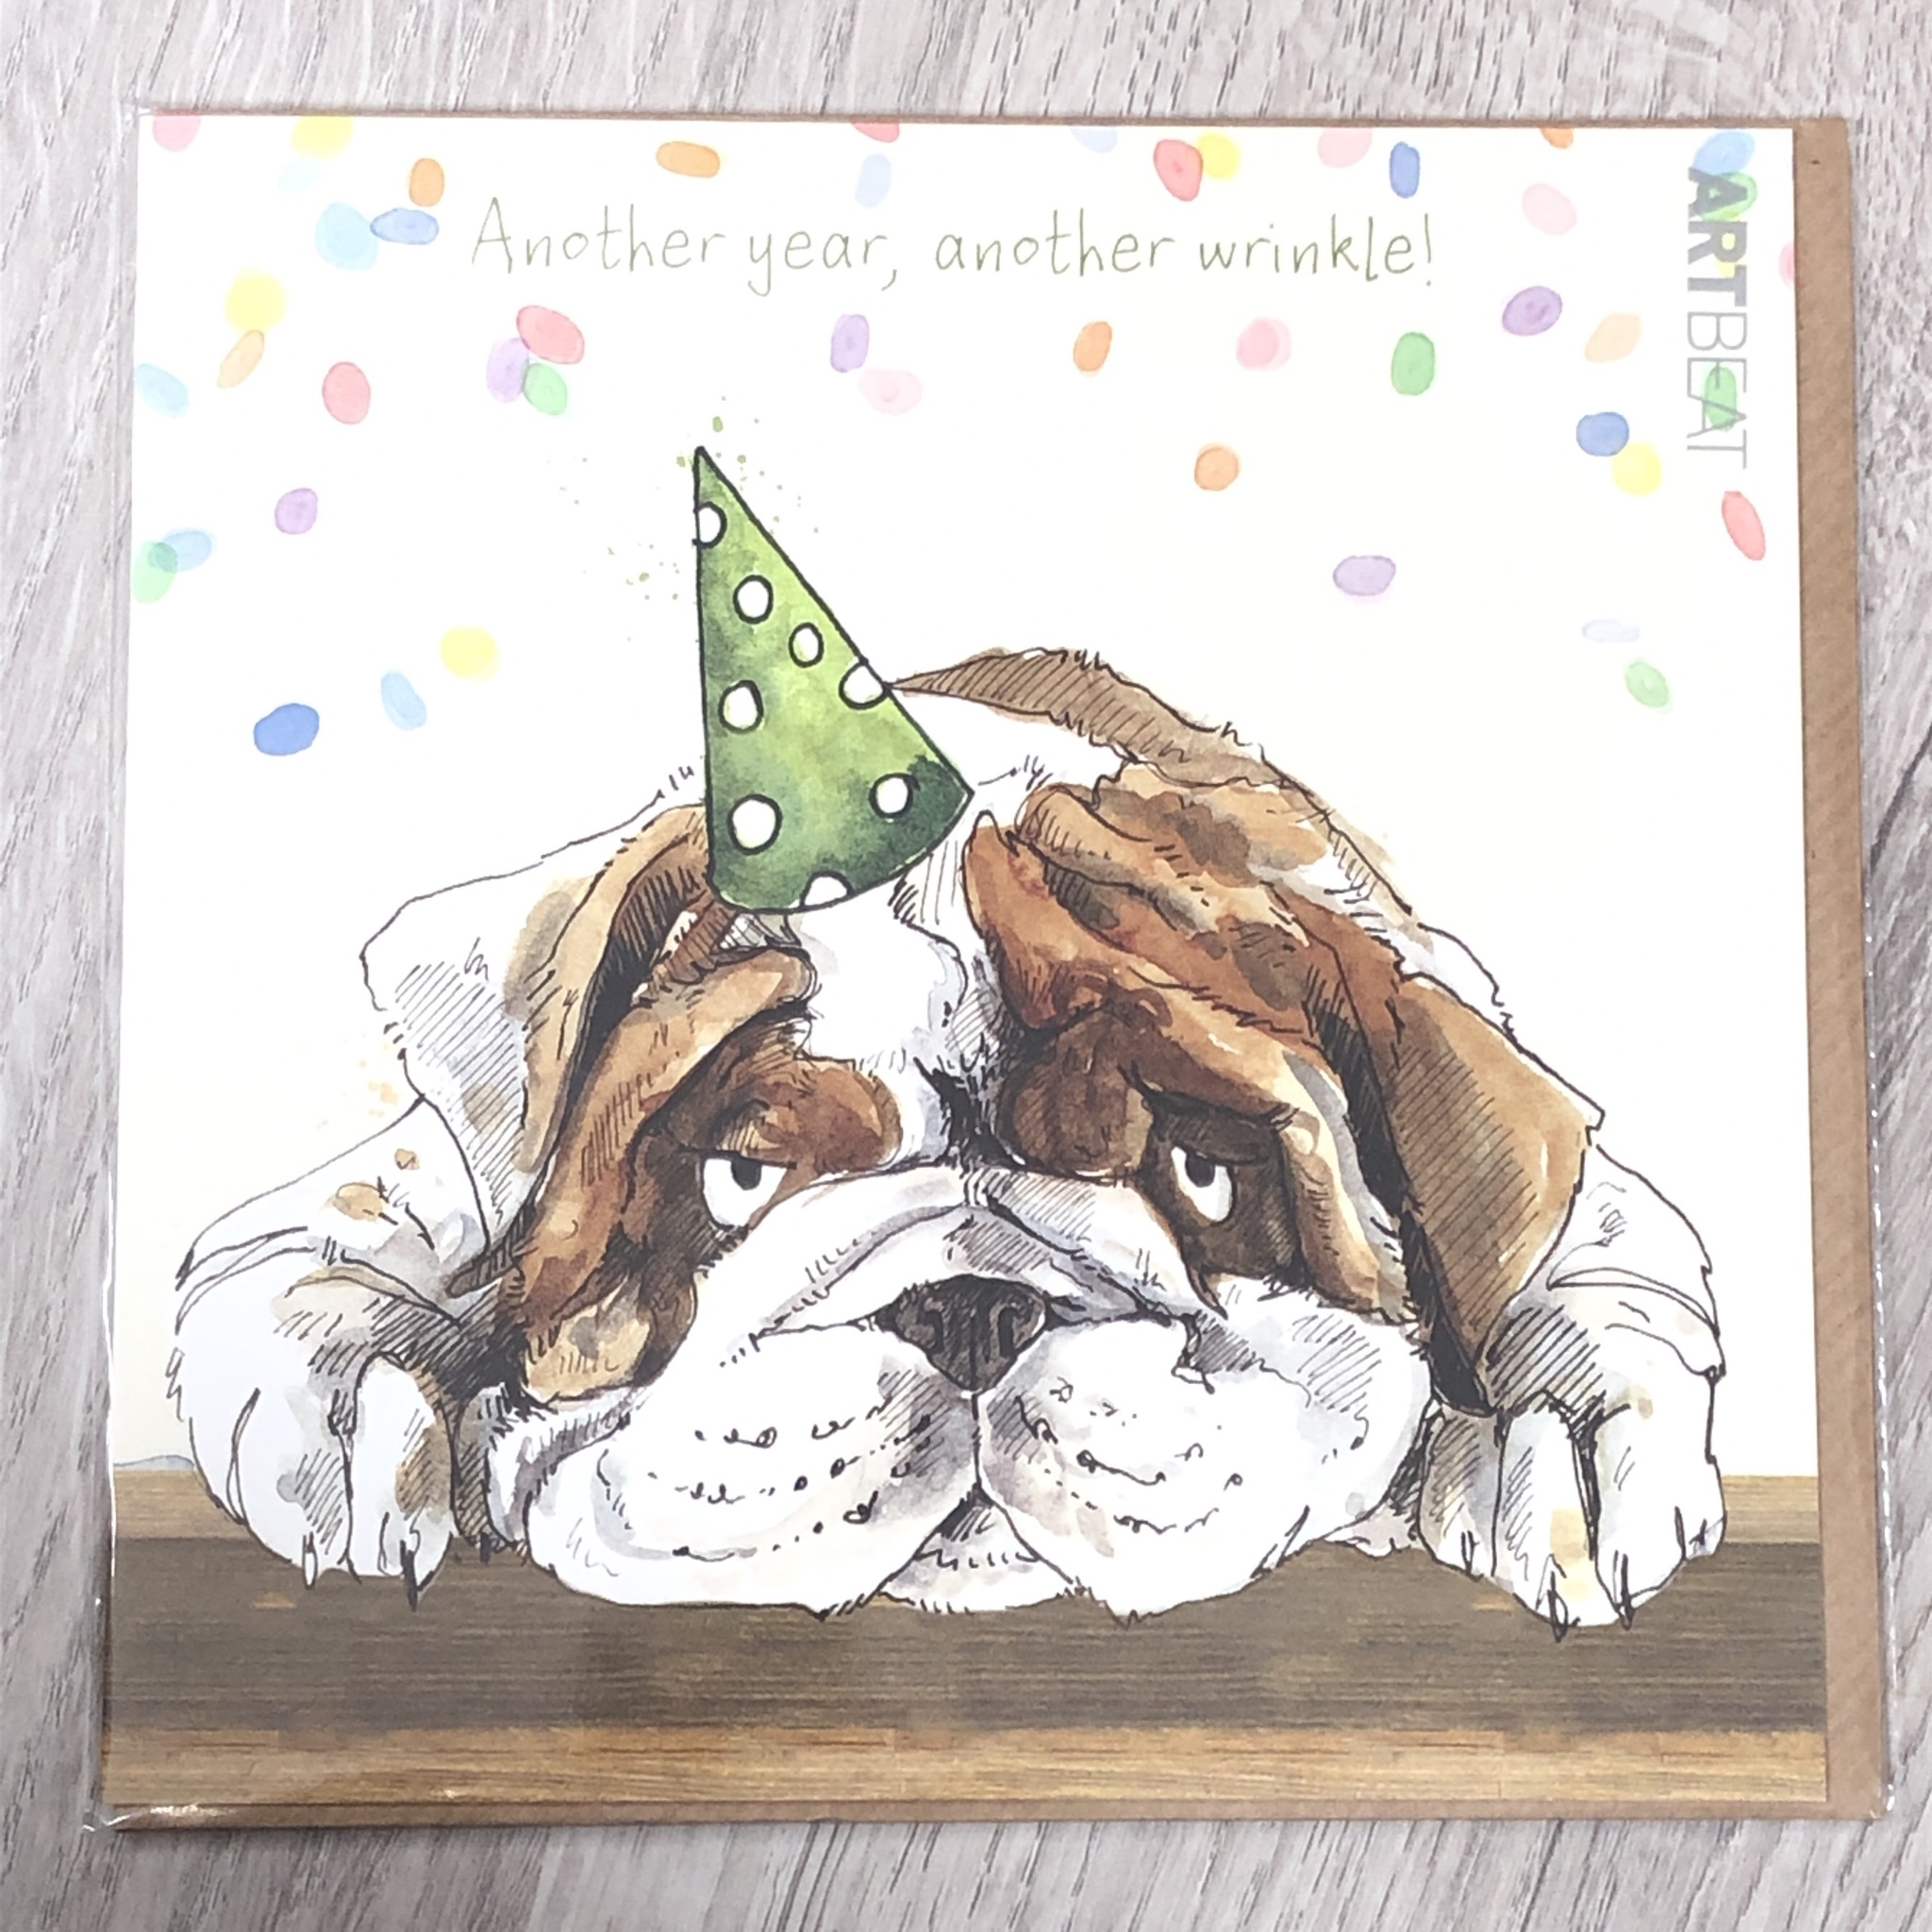 Card - Another year, another wrinkle! Dog birthday card.